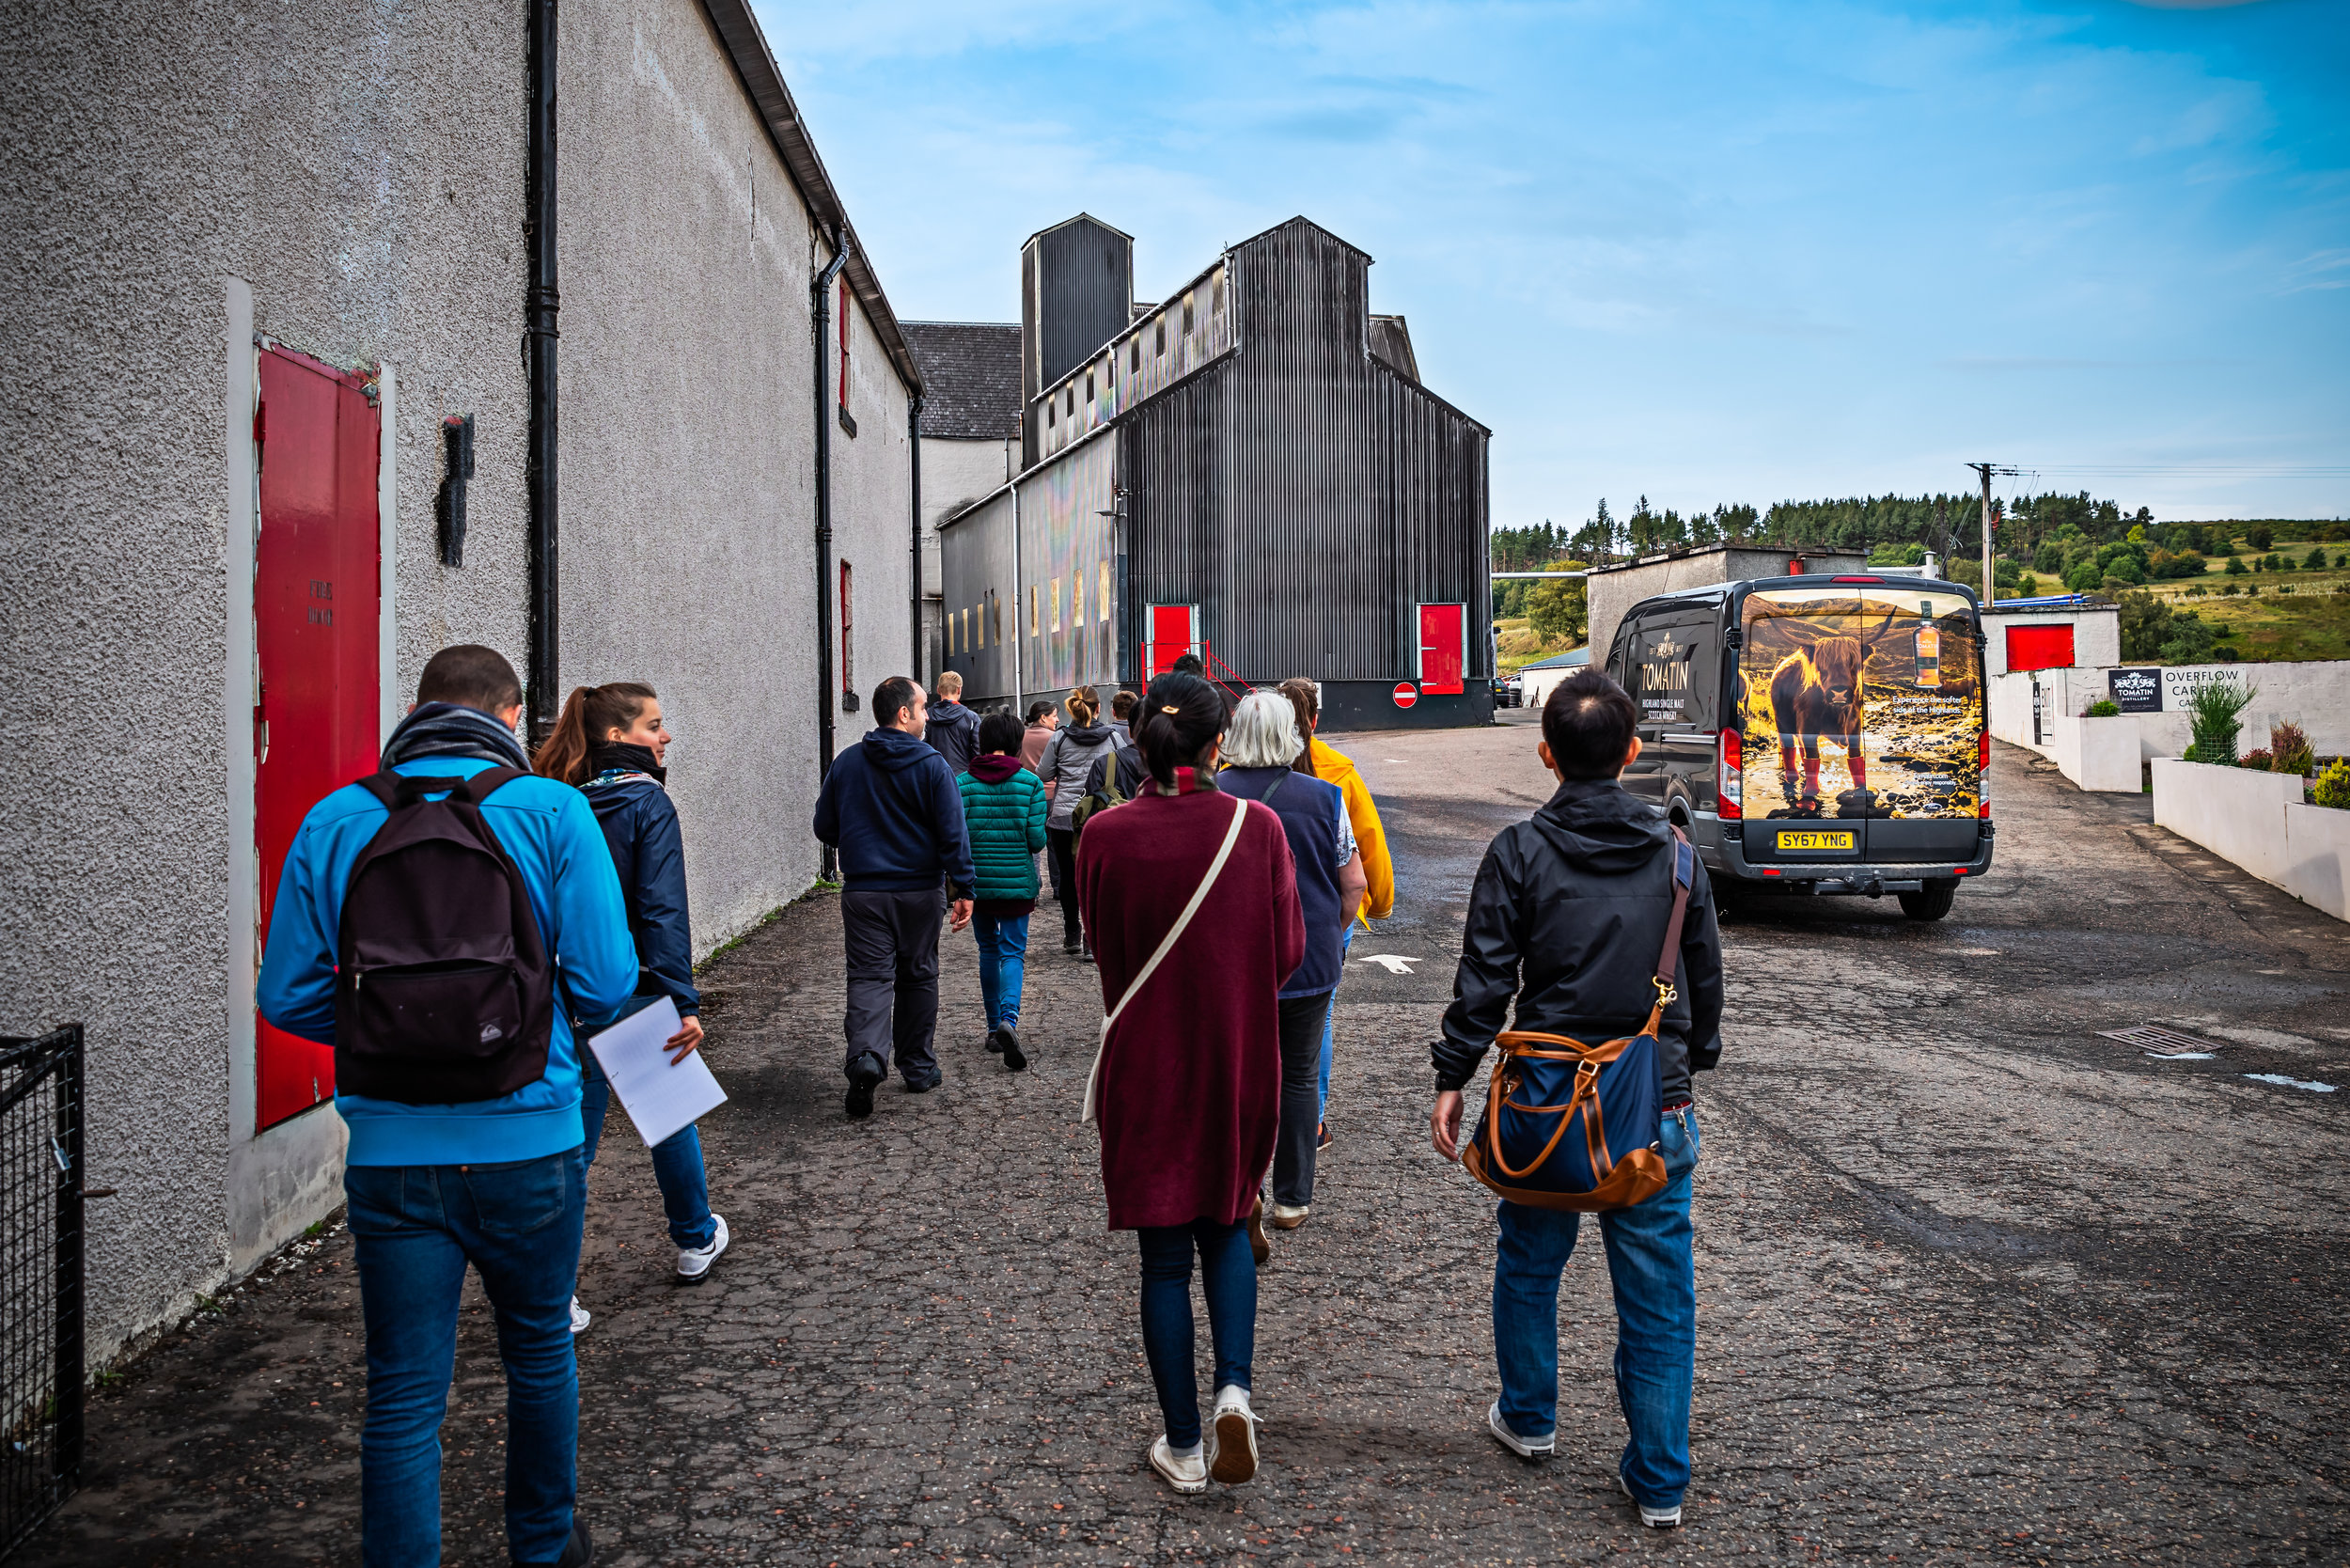 TOUR TIMES  - RUNNING THROUGHOUT THE DAY  Friday 17th of May   Explore our distillery and learn how we produce our award winning whiskies. You will learn about the unique legacy of Tomatin which, having started in 1897, is the driving force for the company today. Finish up with three of our Tomatin Single Malts, each revealing why we are the 'softer side of the Highlands'. For added fun on our festival day, we will demonstrate how well our whiskies can lend themselves to pairings, including chocolate from Highland Patisserie and cheese from Connage Highland dairy.  Allow at least one hour.  This tour includes the tasting of three whiskies;  Tomatin Legacy , Cù Bòcan & Antiquary. Over 18s £10, under 18s £4.  Contact  TOMATIN VISITOR CENTRE  to book.